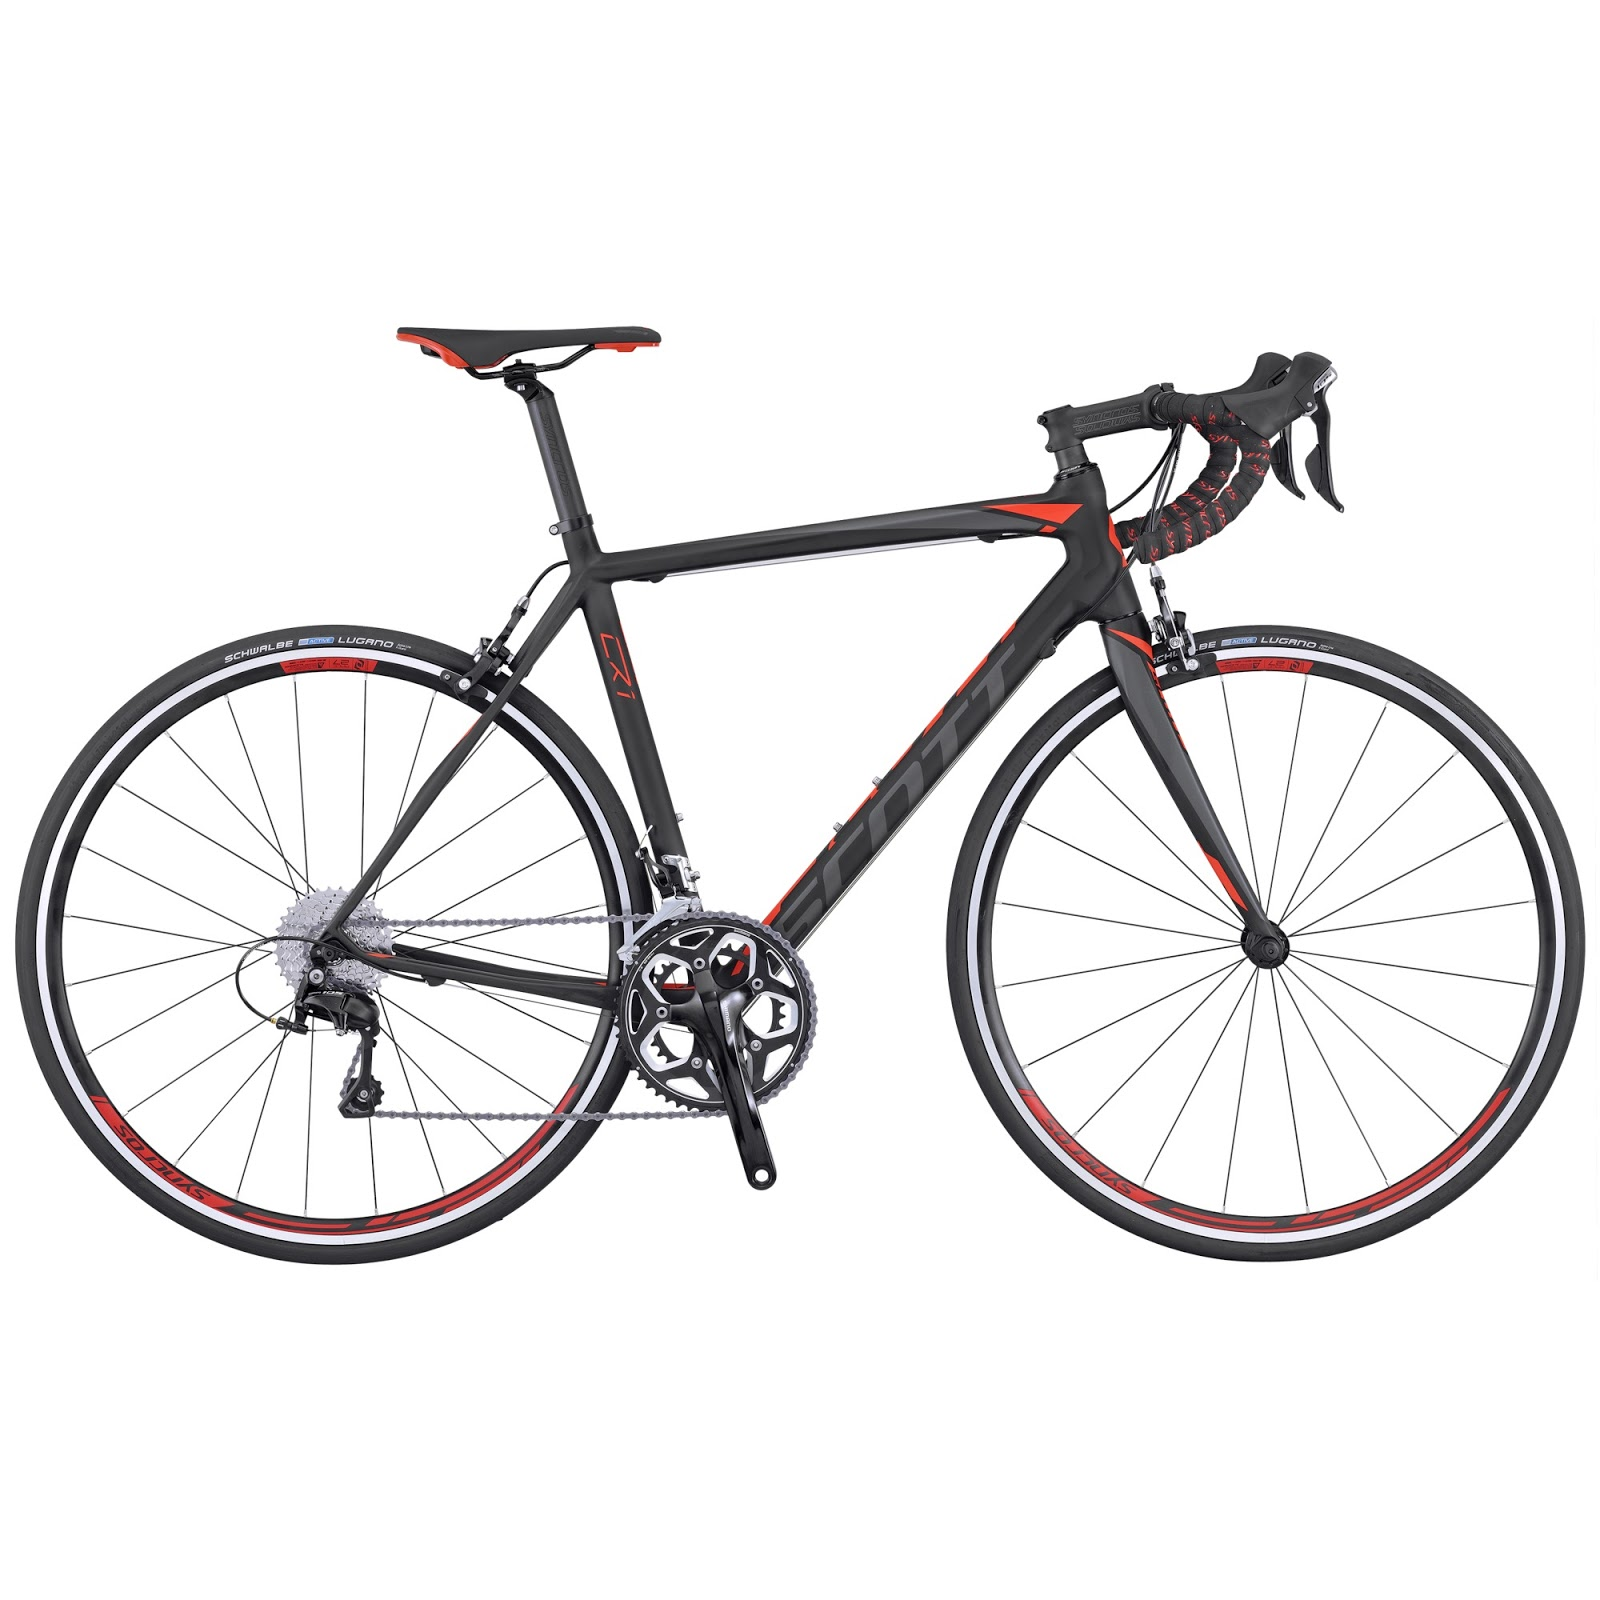 3b7bb4926ee The SCOTT CR1 20's IMP Carbon frame offers the perfect balance of  performance and comfort at a more affordable price point. Designed to save  the rider from ...